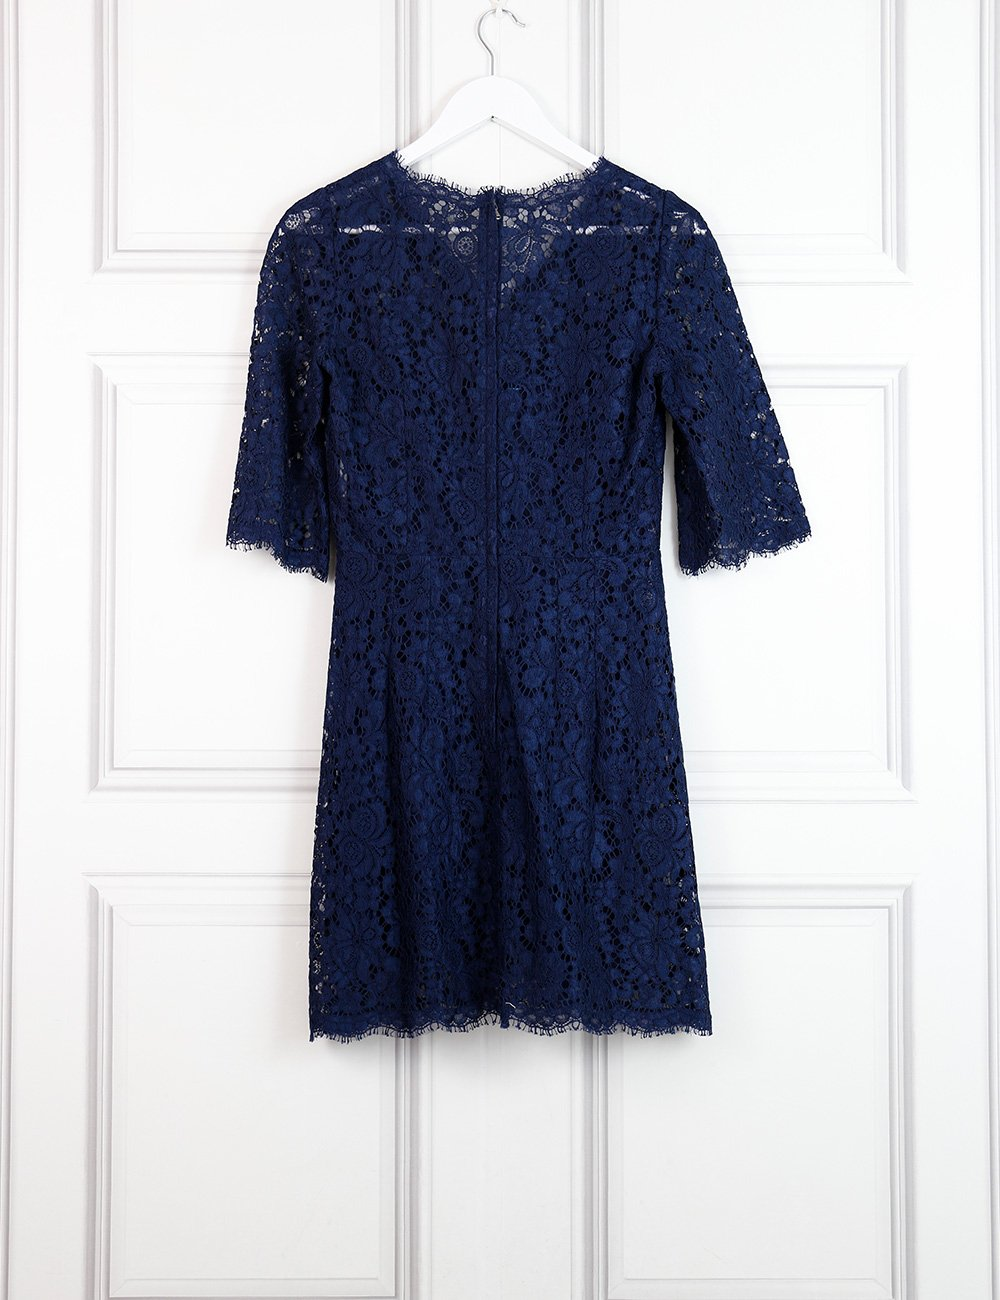 Dolce&Gabbana blue fitted lace dress with v-neck 8UK- My Wardrobe Mistakes